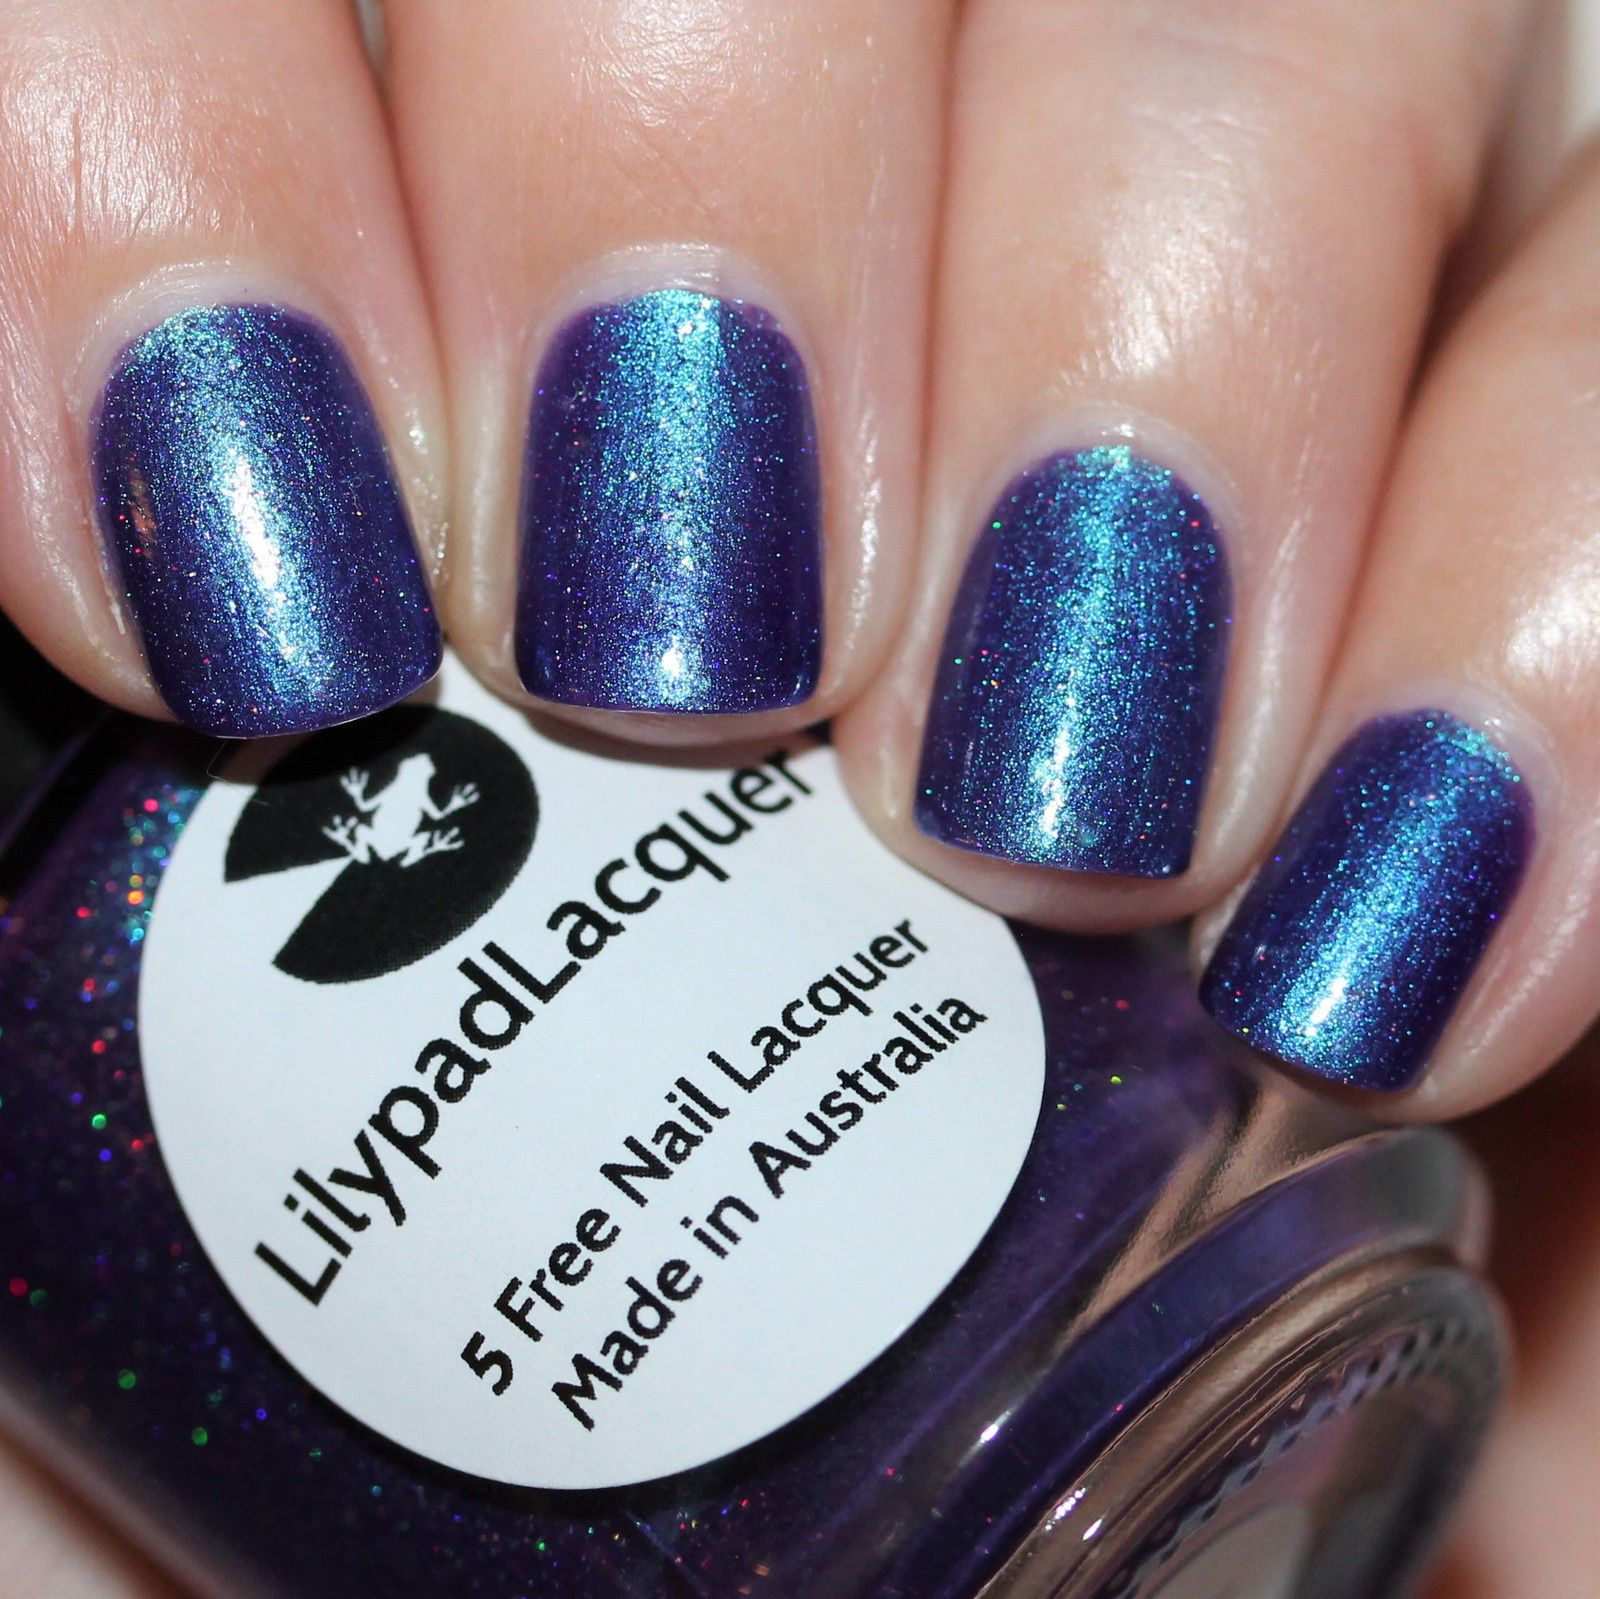 Essie Protein Base Coat / Lilypad Lacquer Fantastical Beast / HK Girl Top Coat